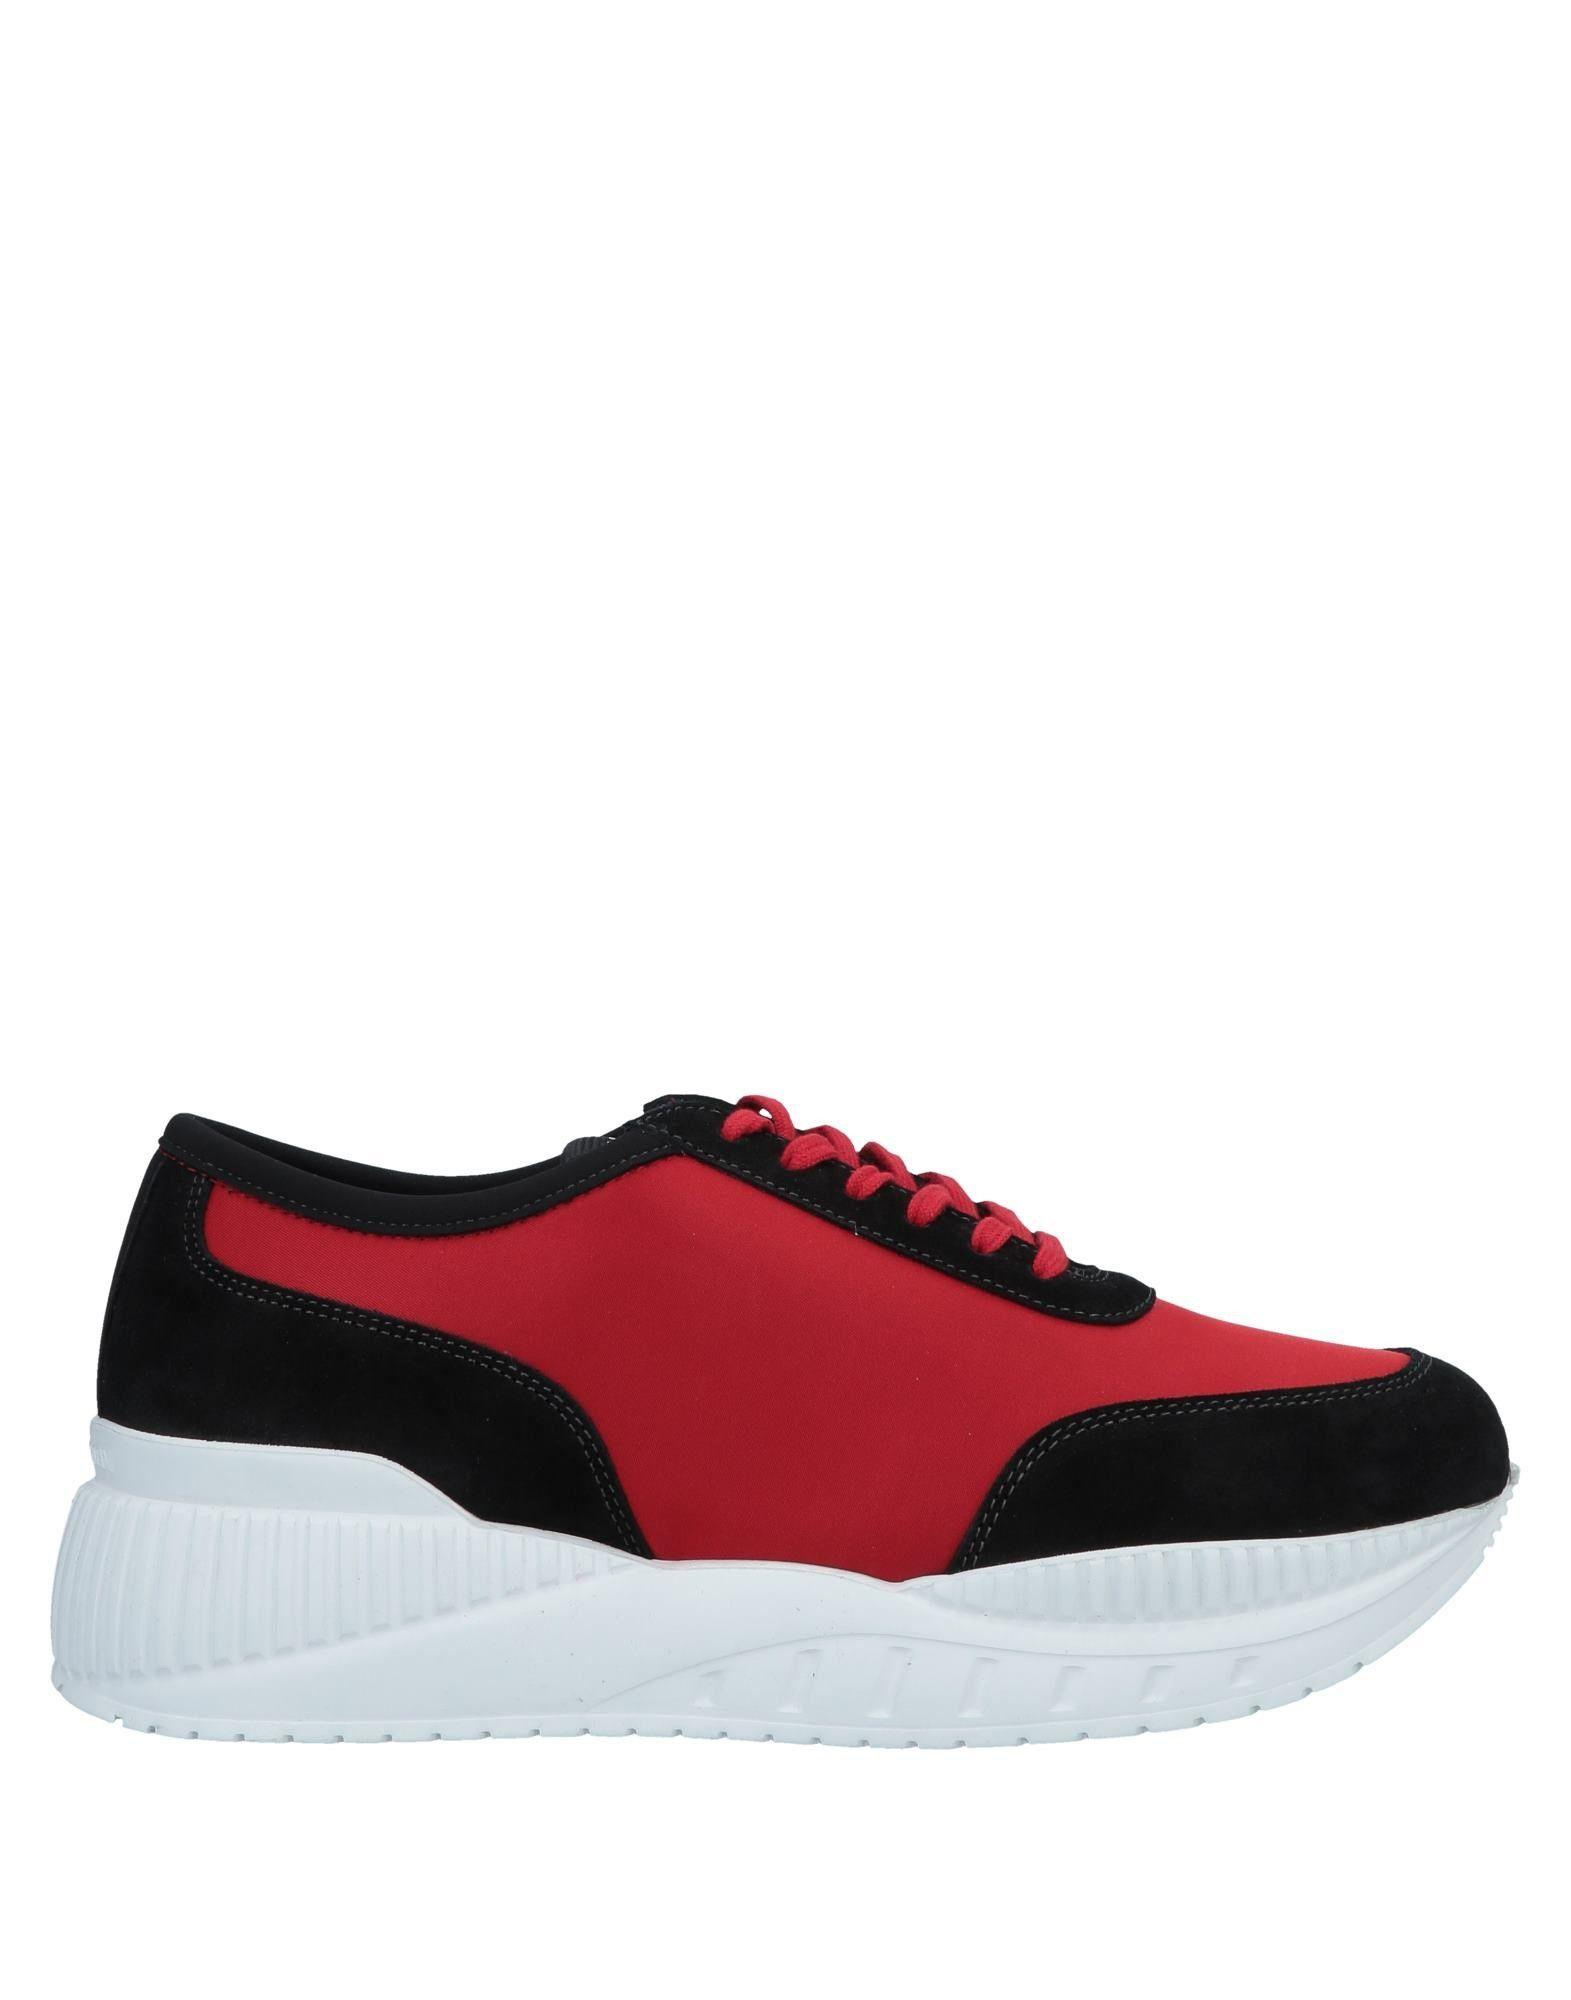 new product fdb3a 8bf86 Emporio Armani. Mens Red Low-tops ...